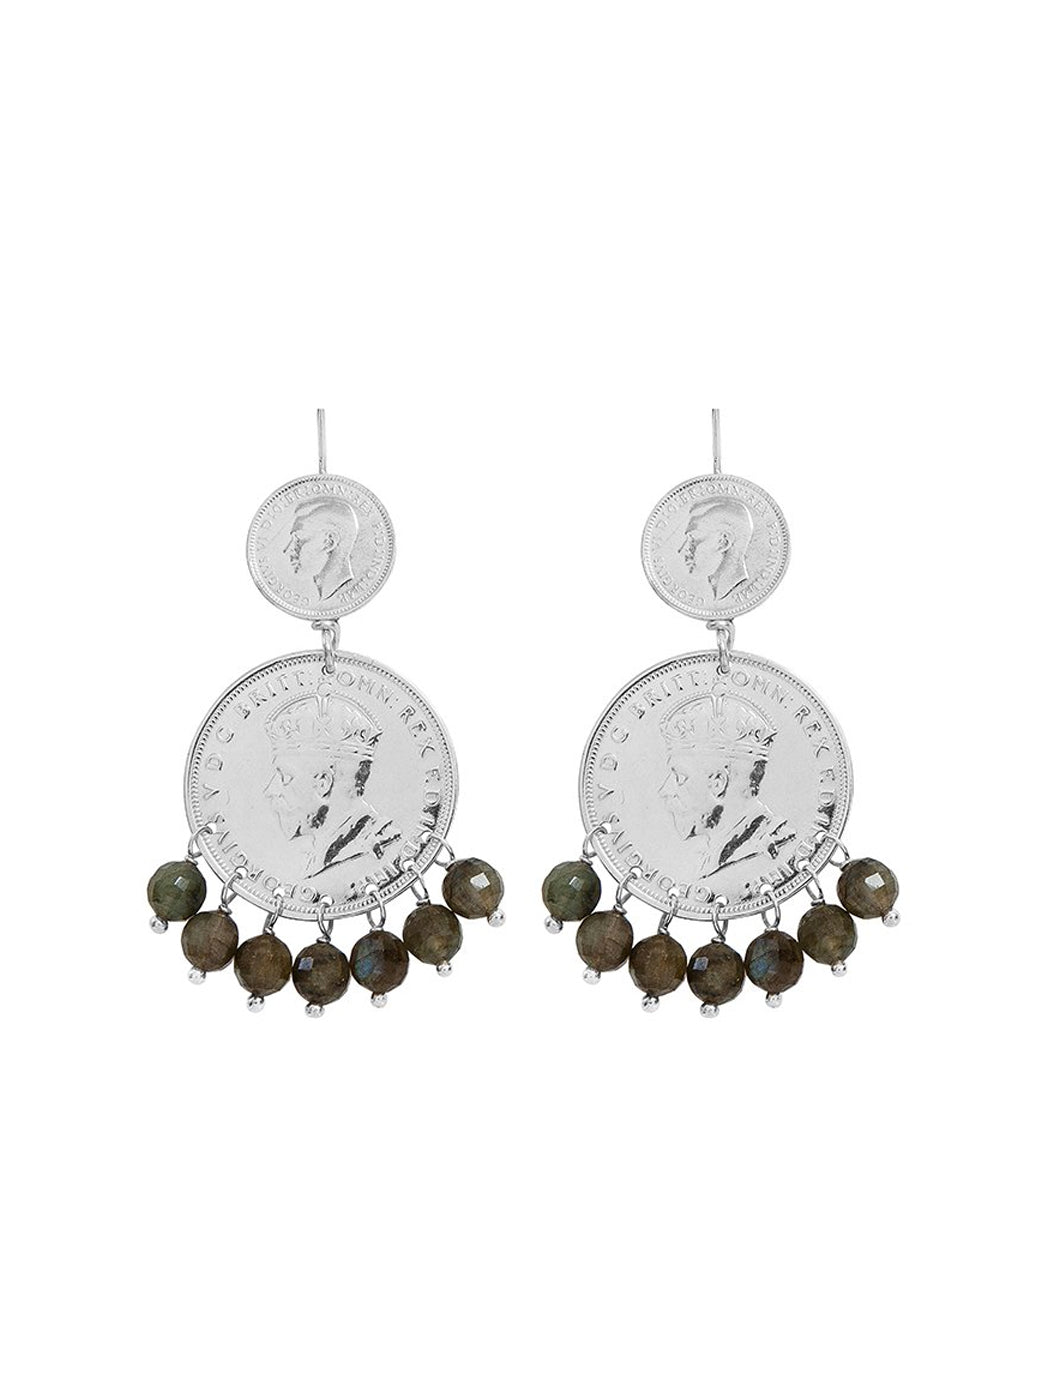 Fiorina Jewellery Mini Marrakesh Earrings Labradorite